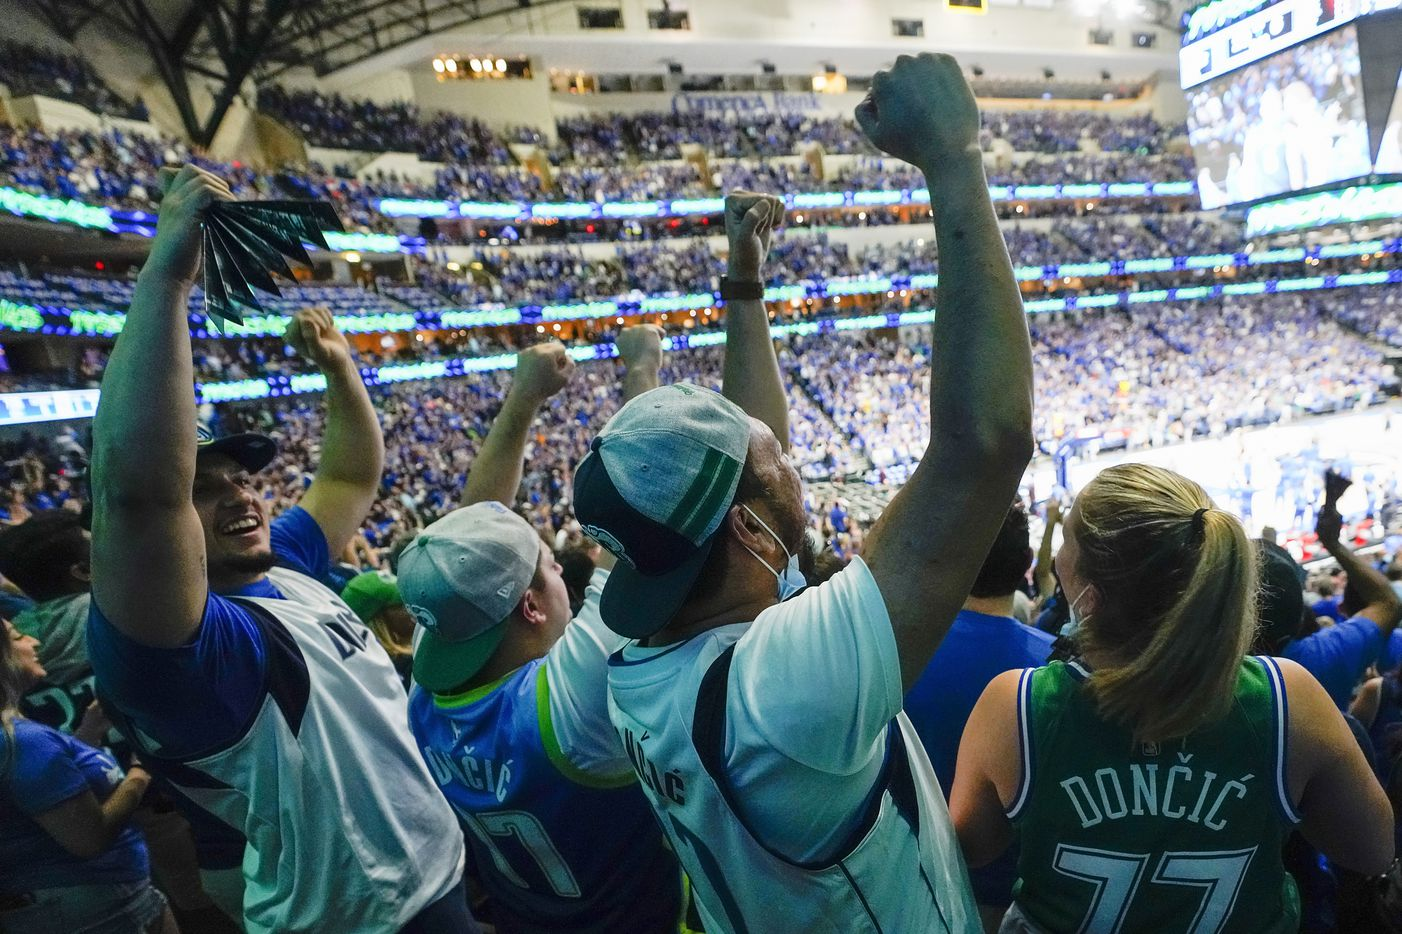 Dallas Mavericks fans celebrate a basket during the fourth quarter of an NBA playoff basketball game against the LA Clippers at American Airlines Center on Friday, May 28, 2021, in Dallas.